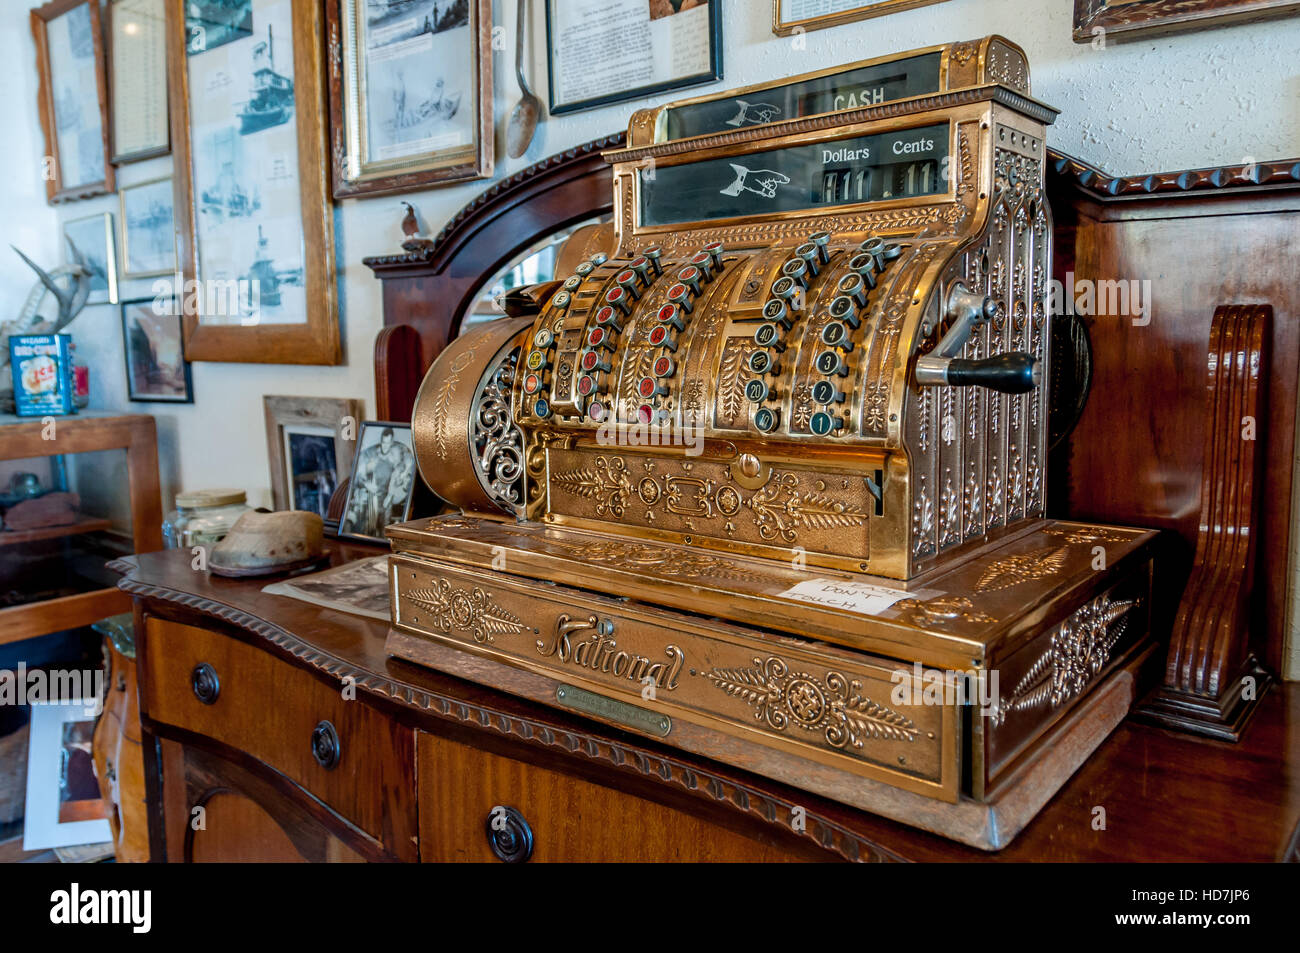 Antique Cash Register In Gold With National Brand Across Cash Drawer